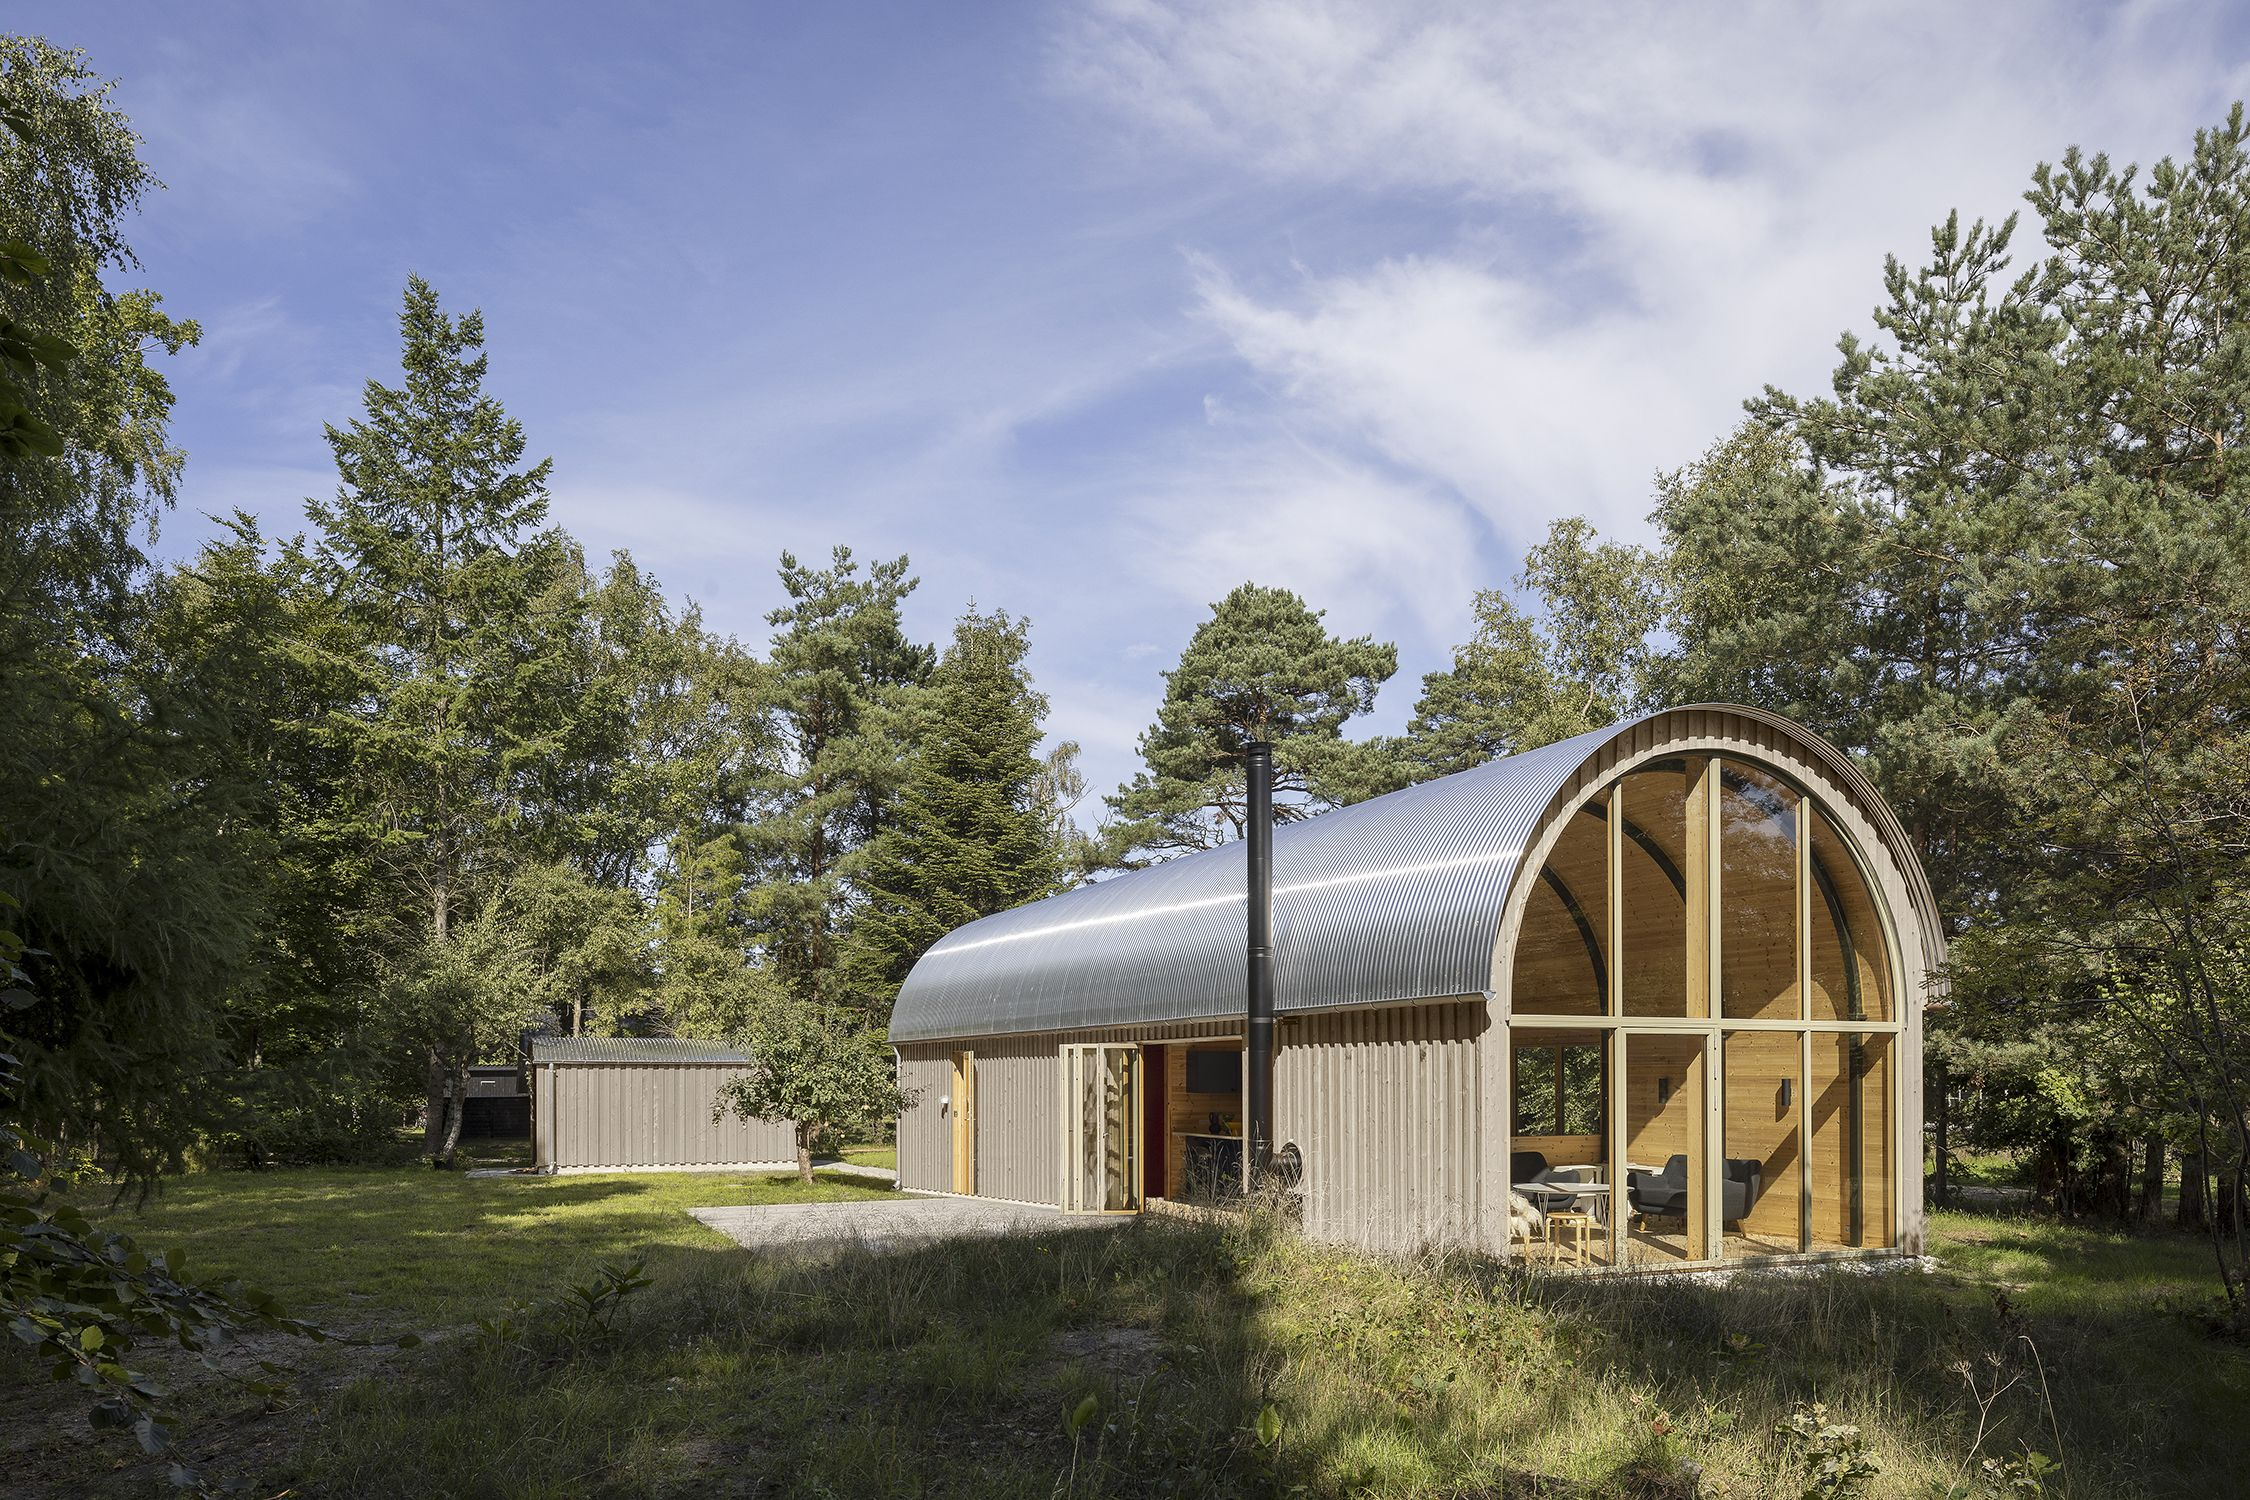 A Barrel-Vaulted Barn Surrounded by the Scent of Pine